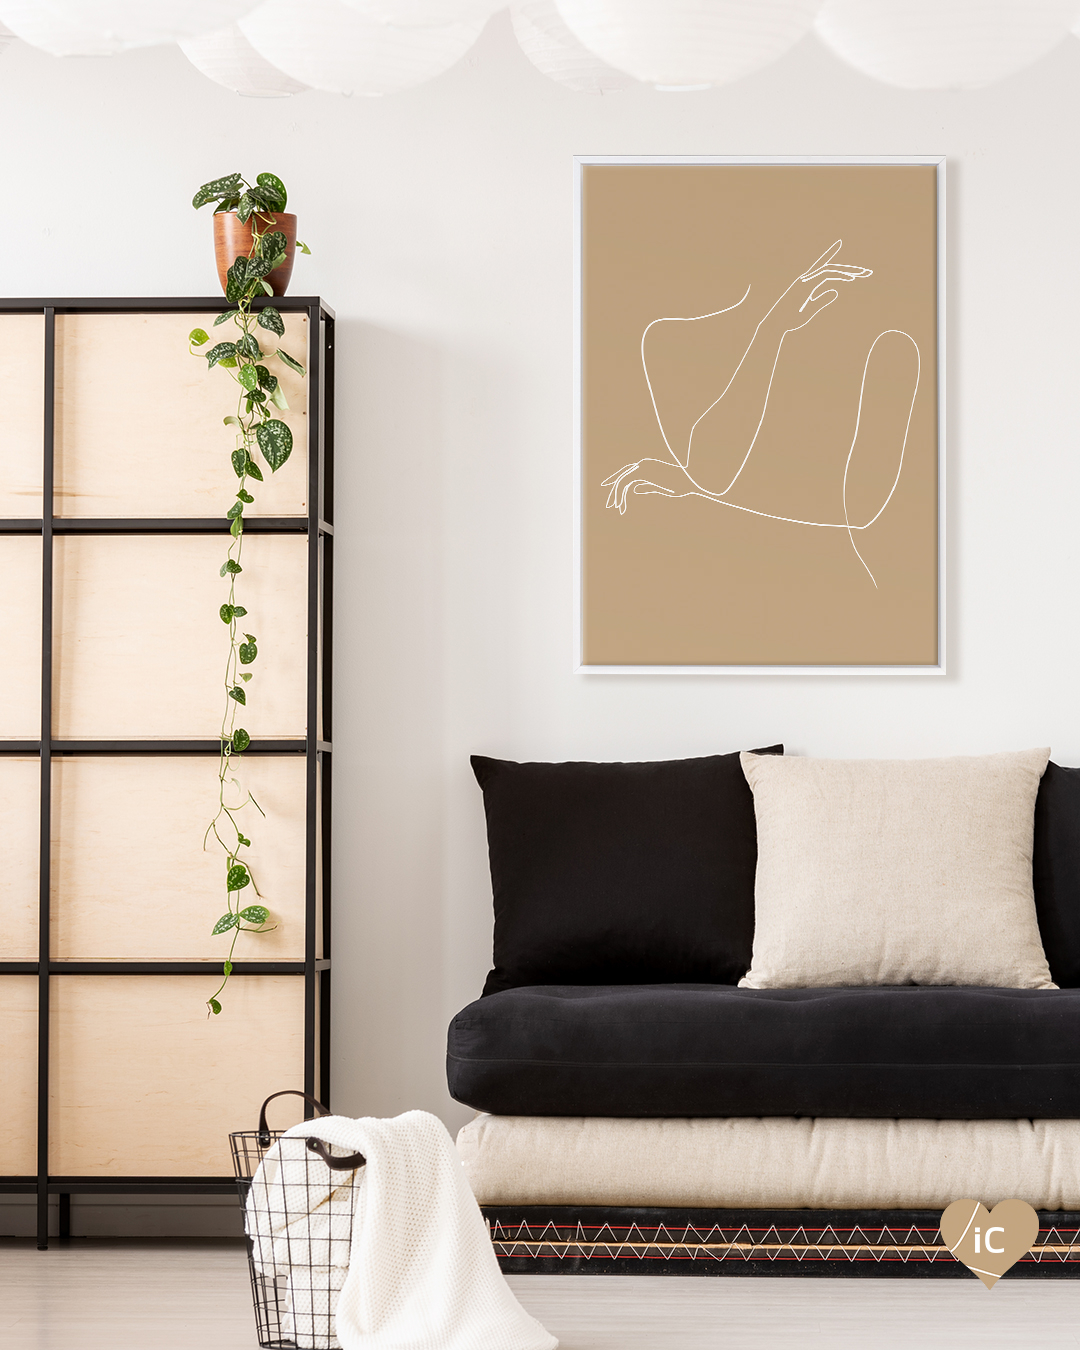 Tan colored graphic with figure-shaped white line drawing framed in white in a room with black and white sofa cushions and dresser with long ivy plant